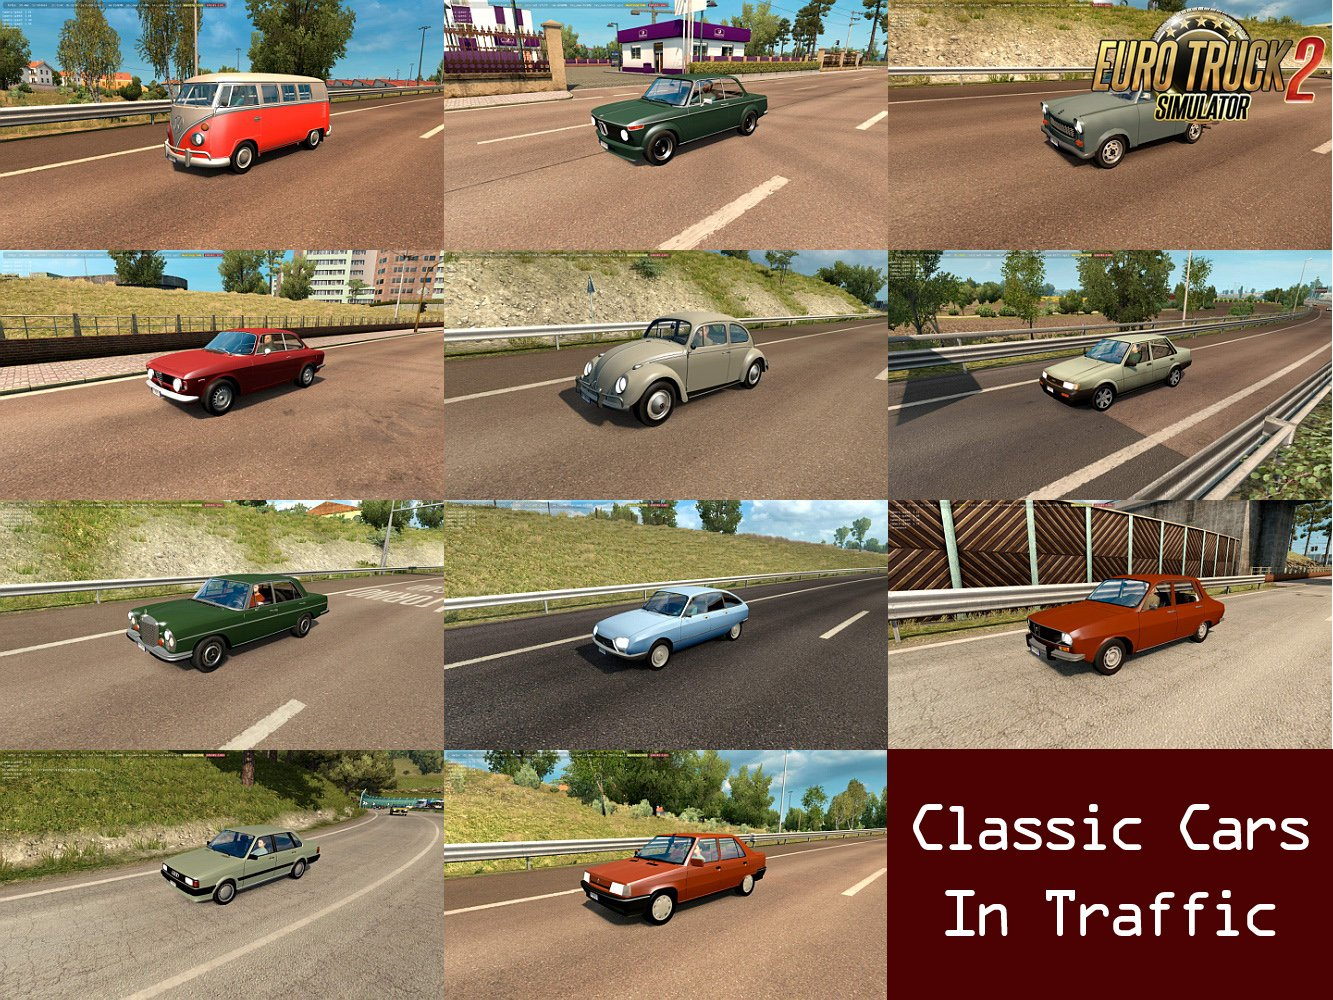 Classic Cars Traffic Pack v1.2 by TrafficManiac